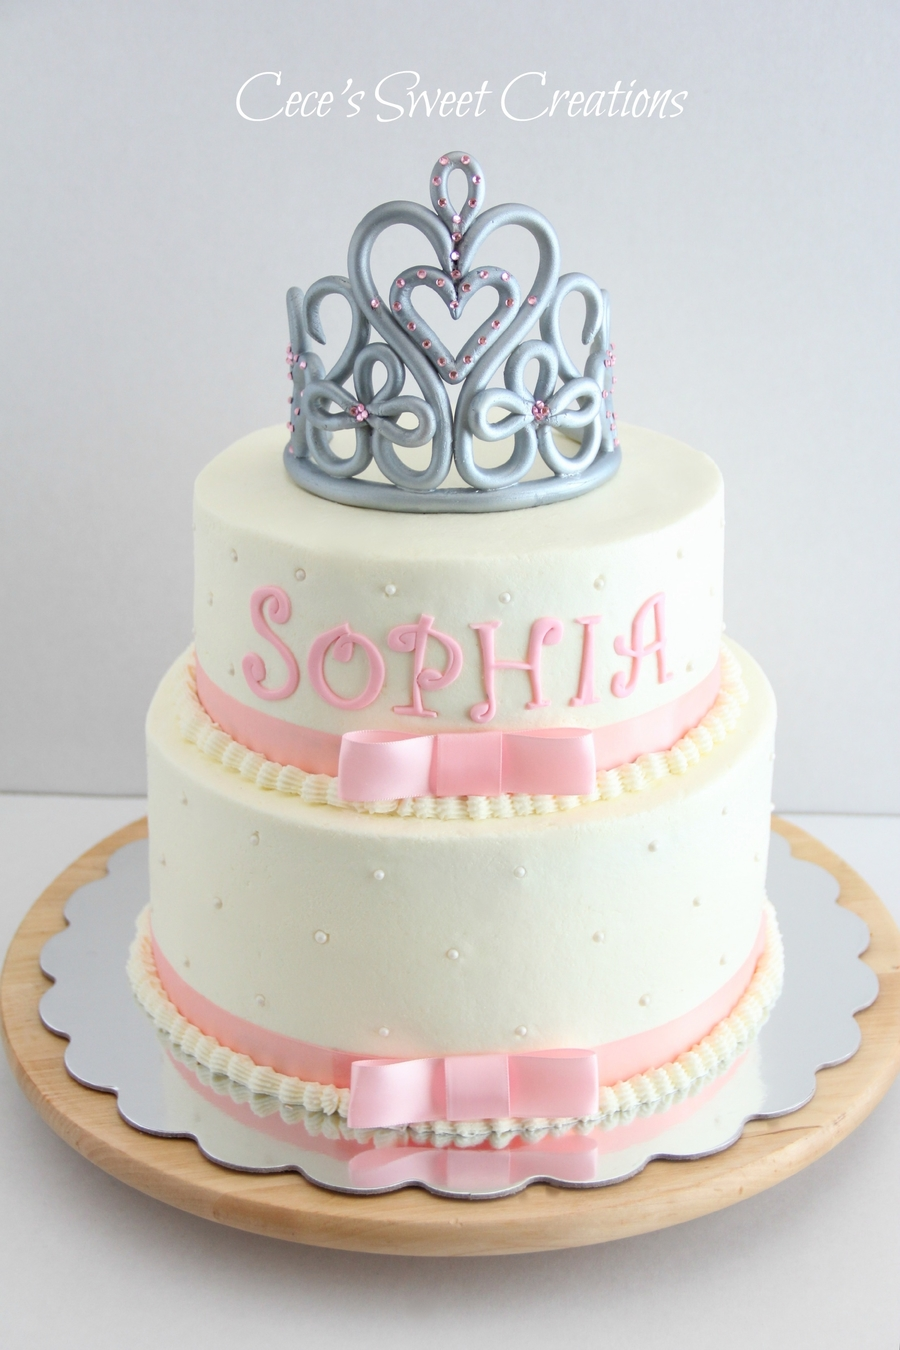 2 Tier Buttercream Princess Baby Shower Cake. Tiara Was Freestyle And Made  From MMF And Gum Paste. Thank You For Looking U003c3